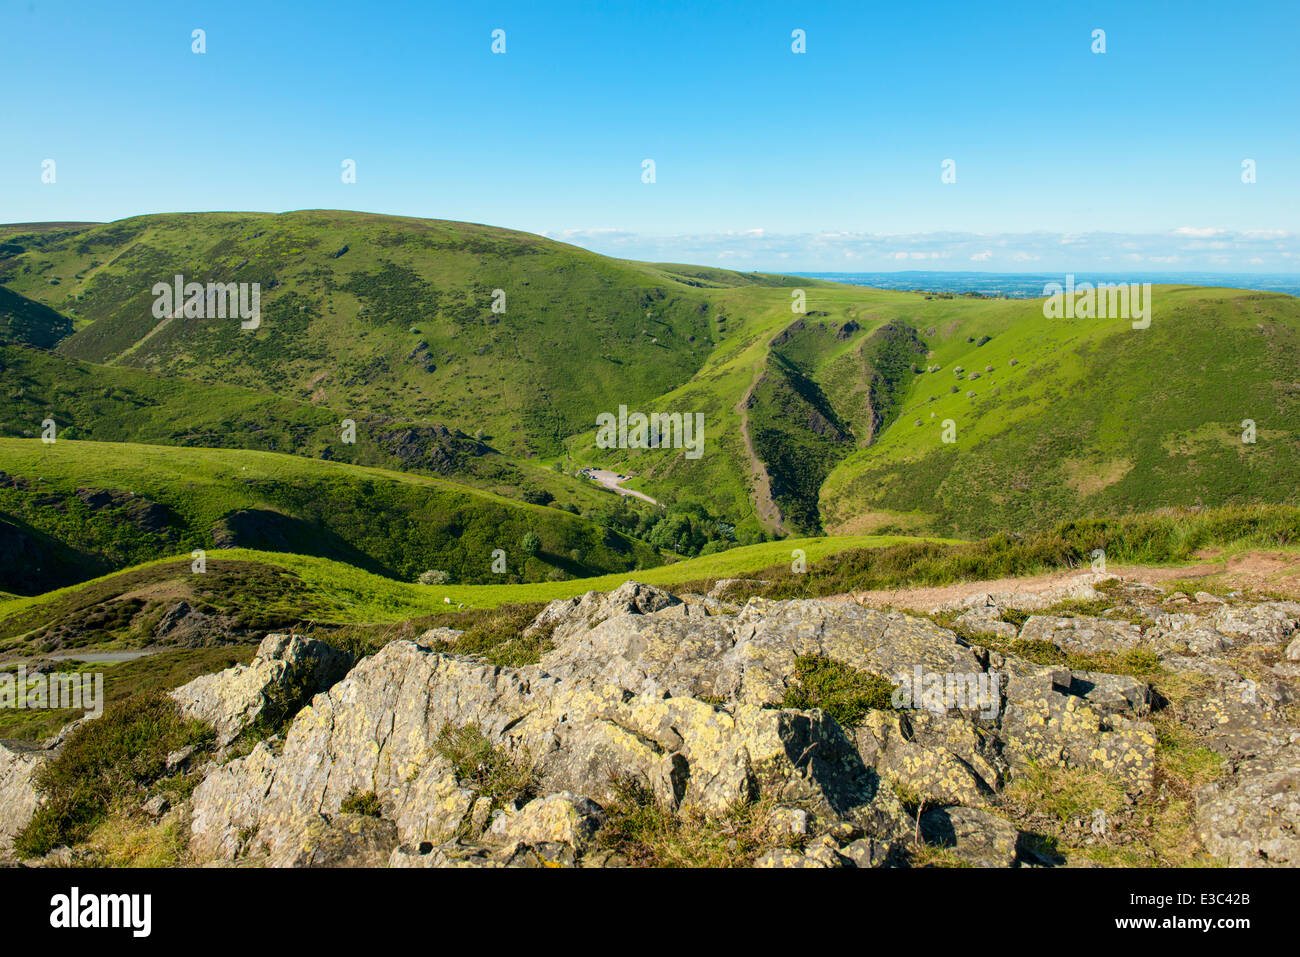 Evening light on the Long Mynd, looking into Carding Mill Valley, Church Stretton, Shropshire, England - Stock Image